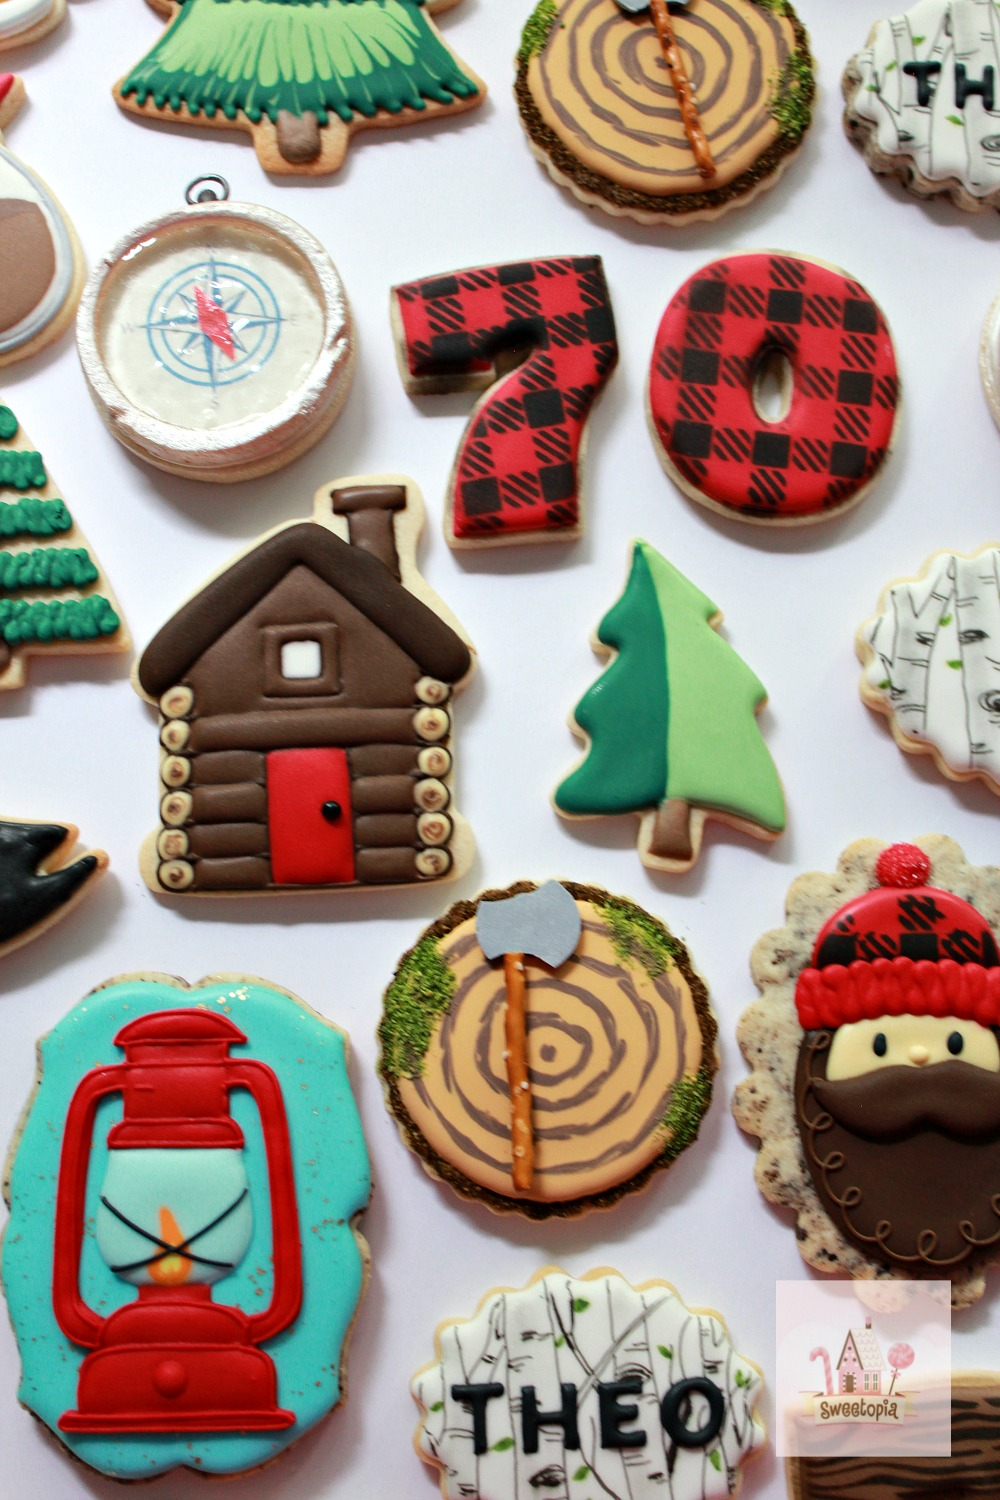 Decorating Camping Cookies with Royal Icing Video How To Sweetopia